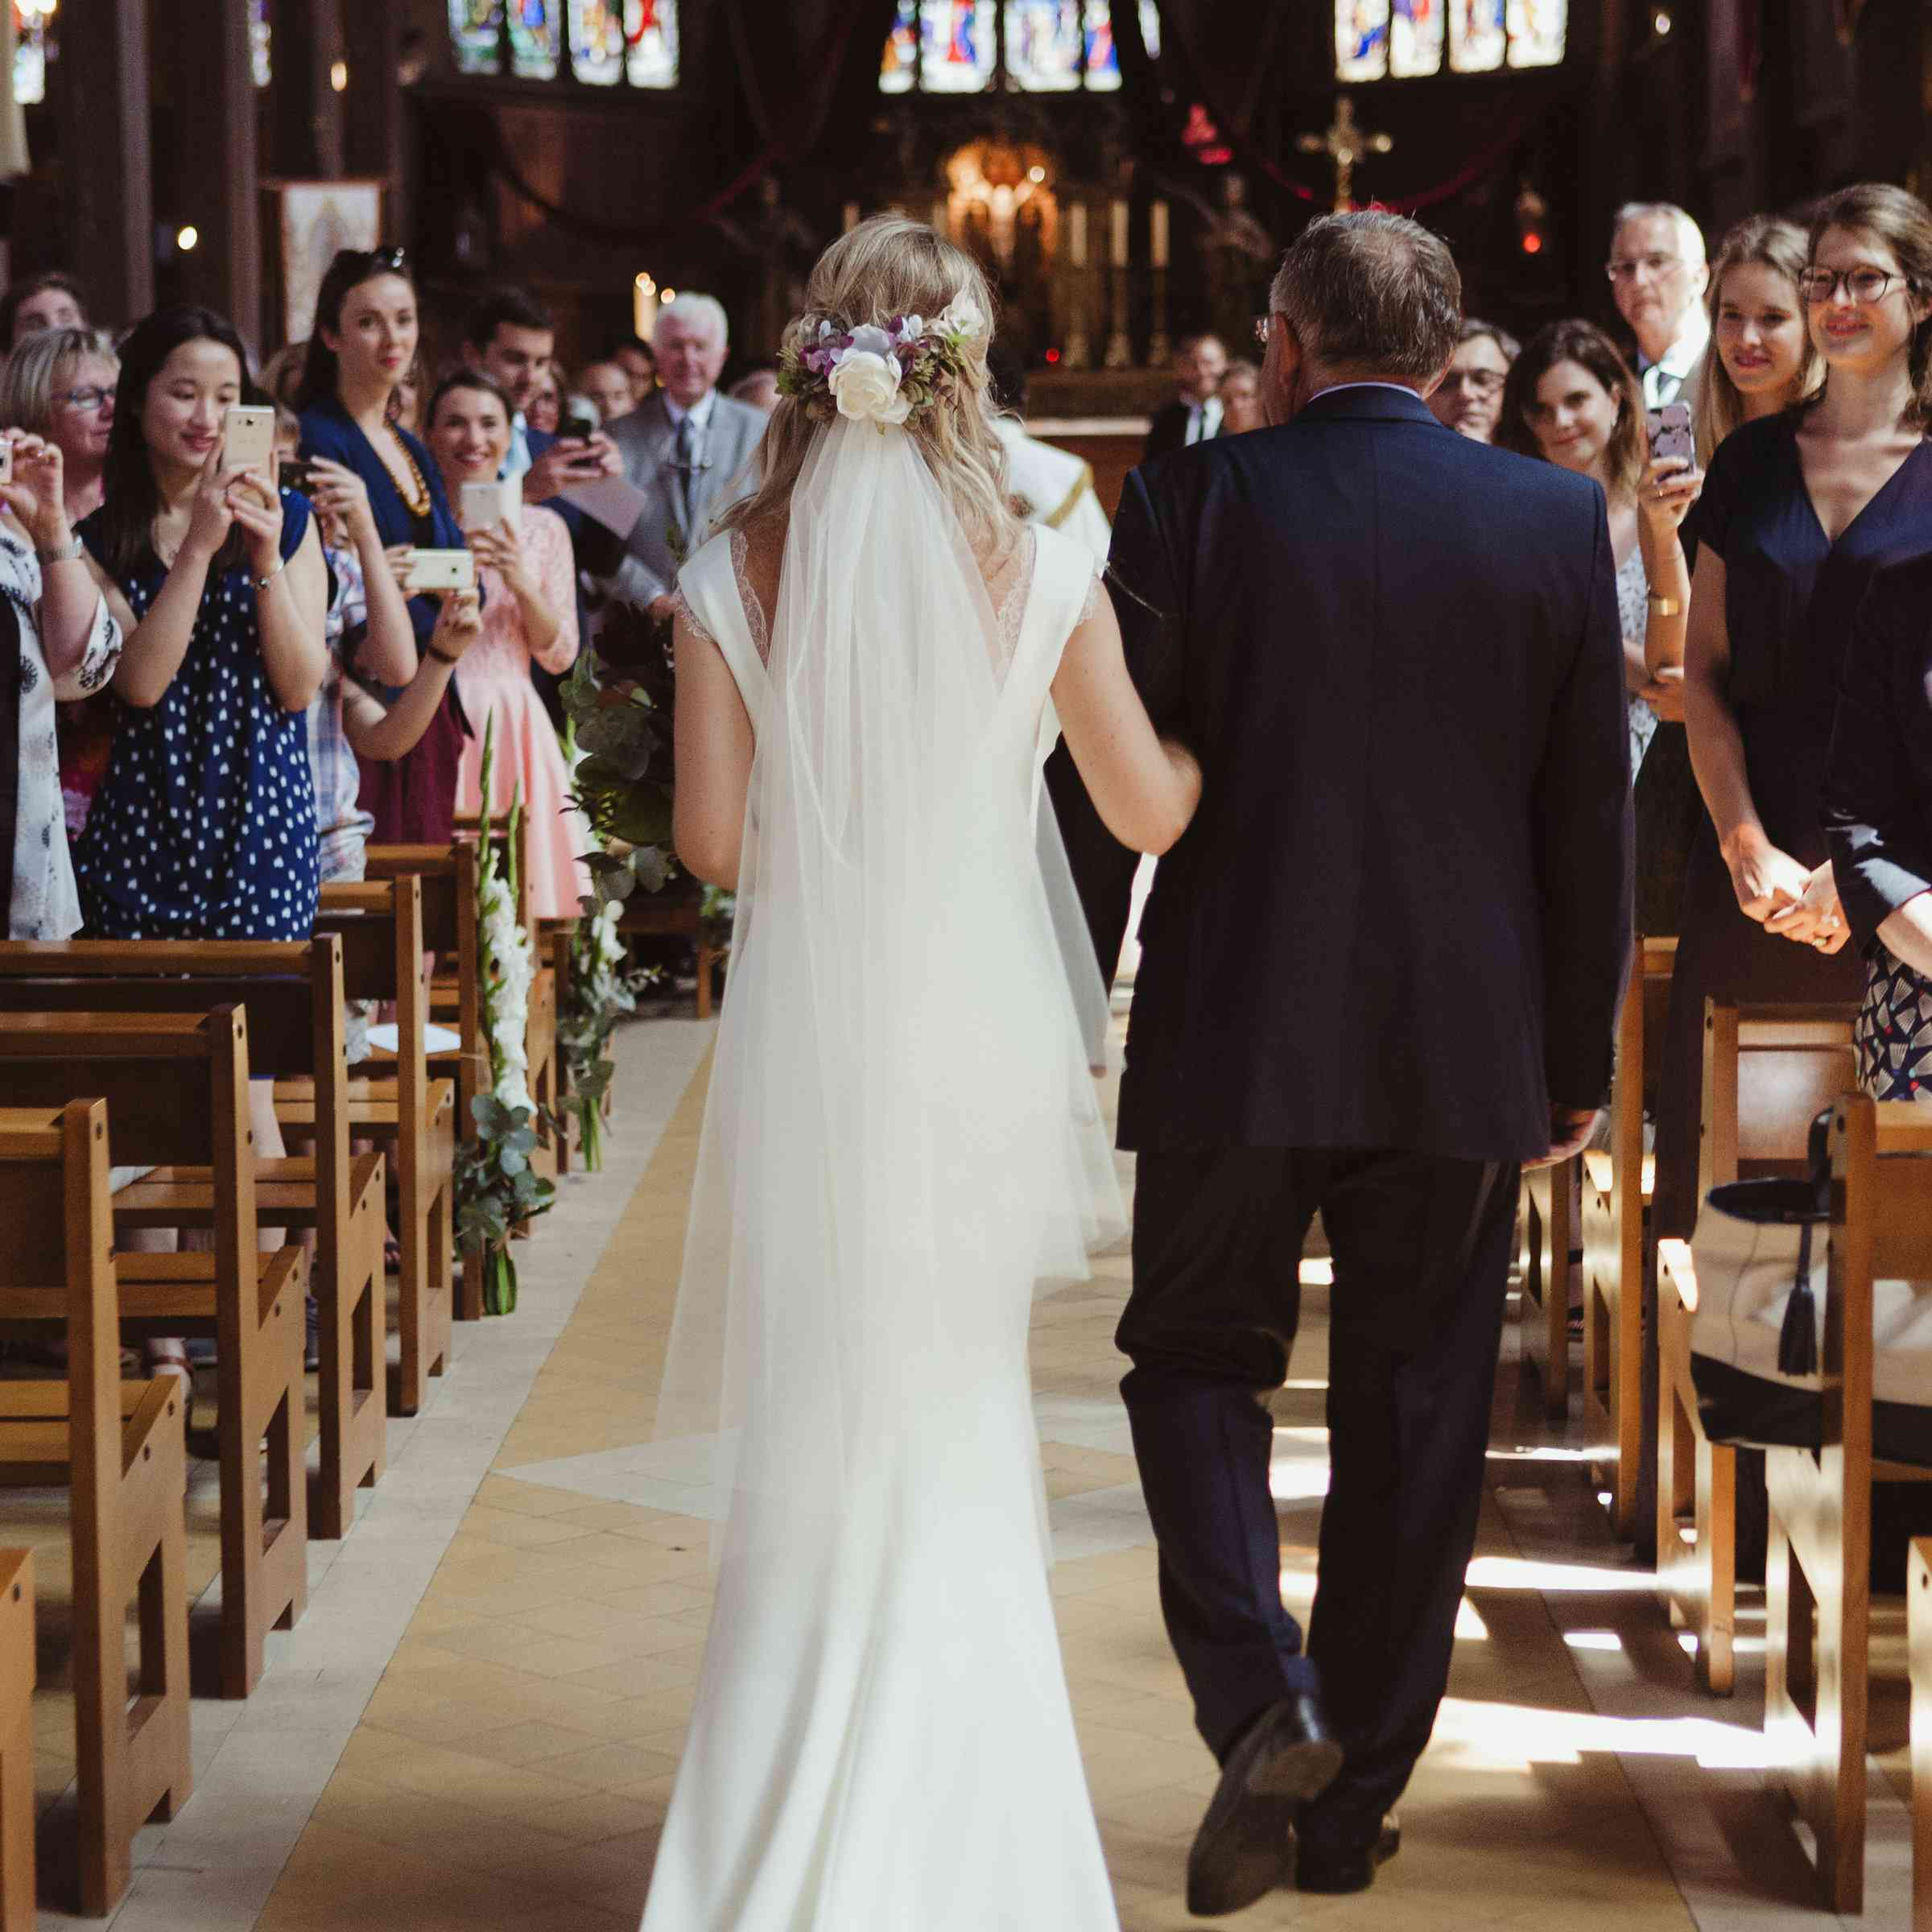 What Song Do Brides Walk Down The Aisle To: A Traditional French Wedding (With A Twist!) In Normandy